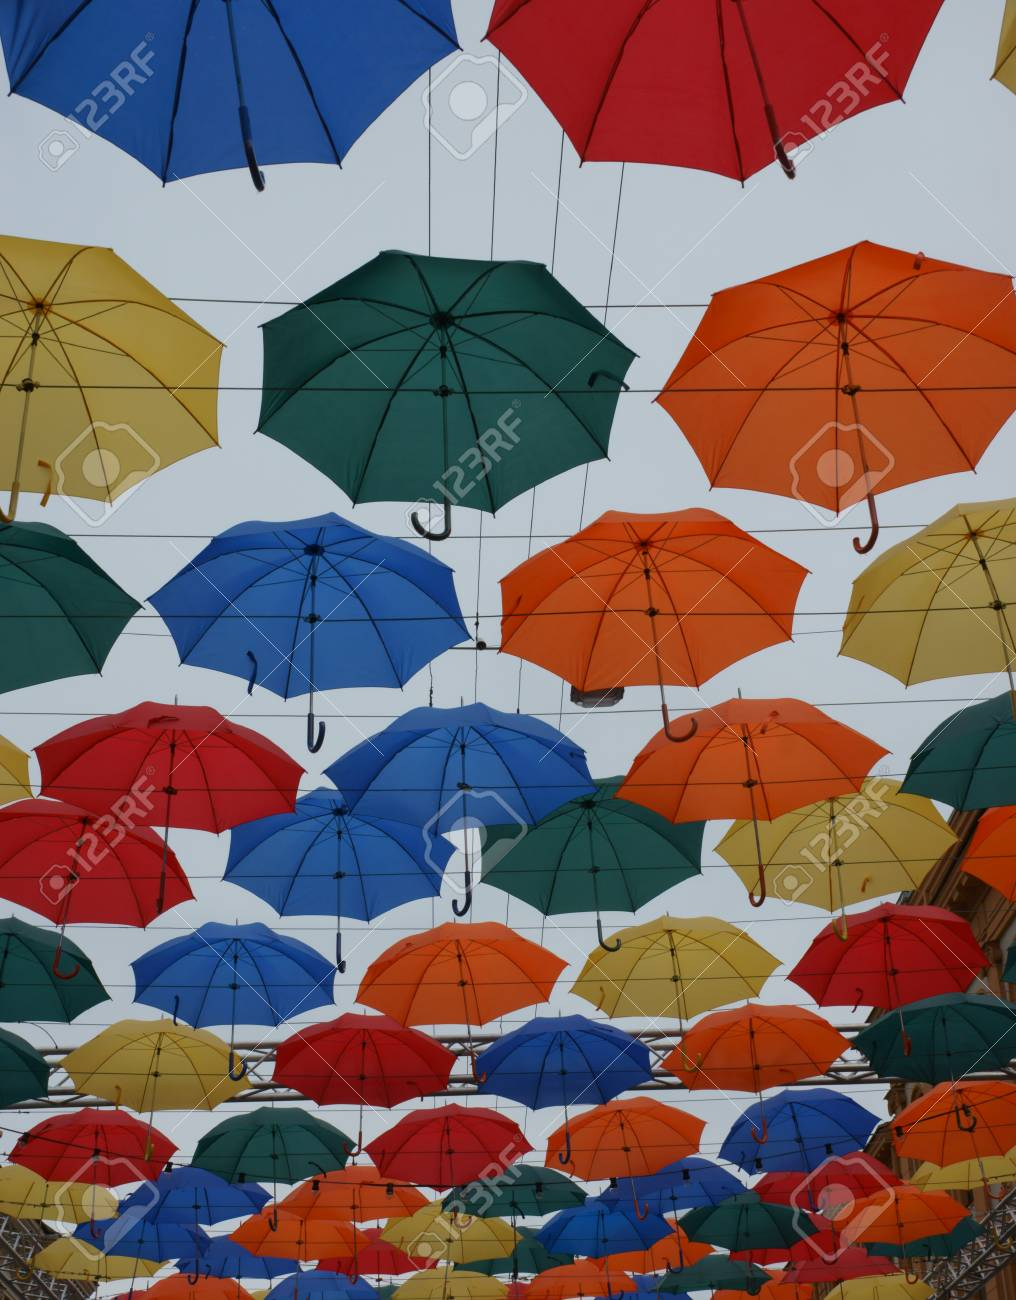 4466a83d5 Bright, beautiful, colored umbrellas on a cloudy sky background Stock Photo  - 80960199